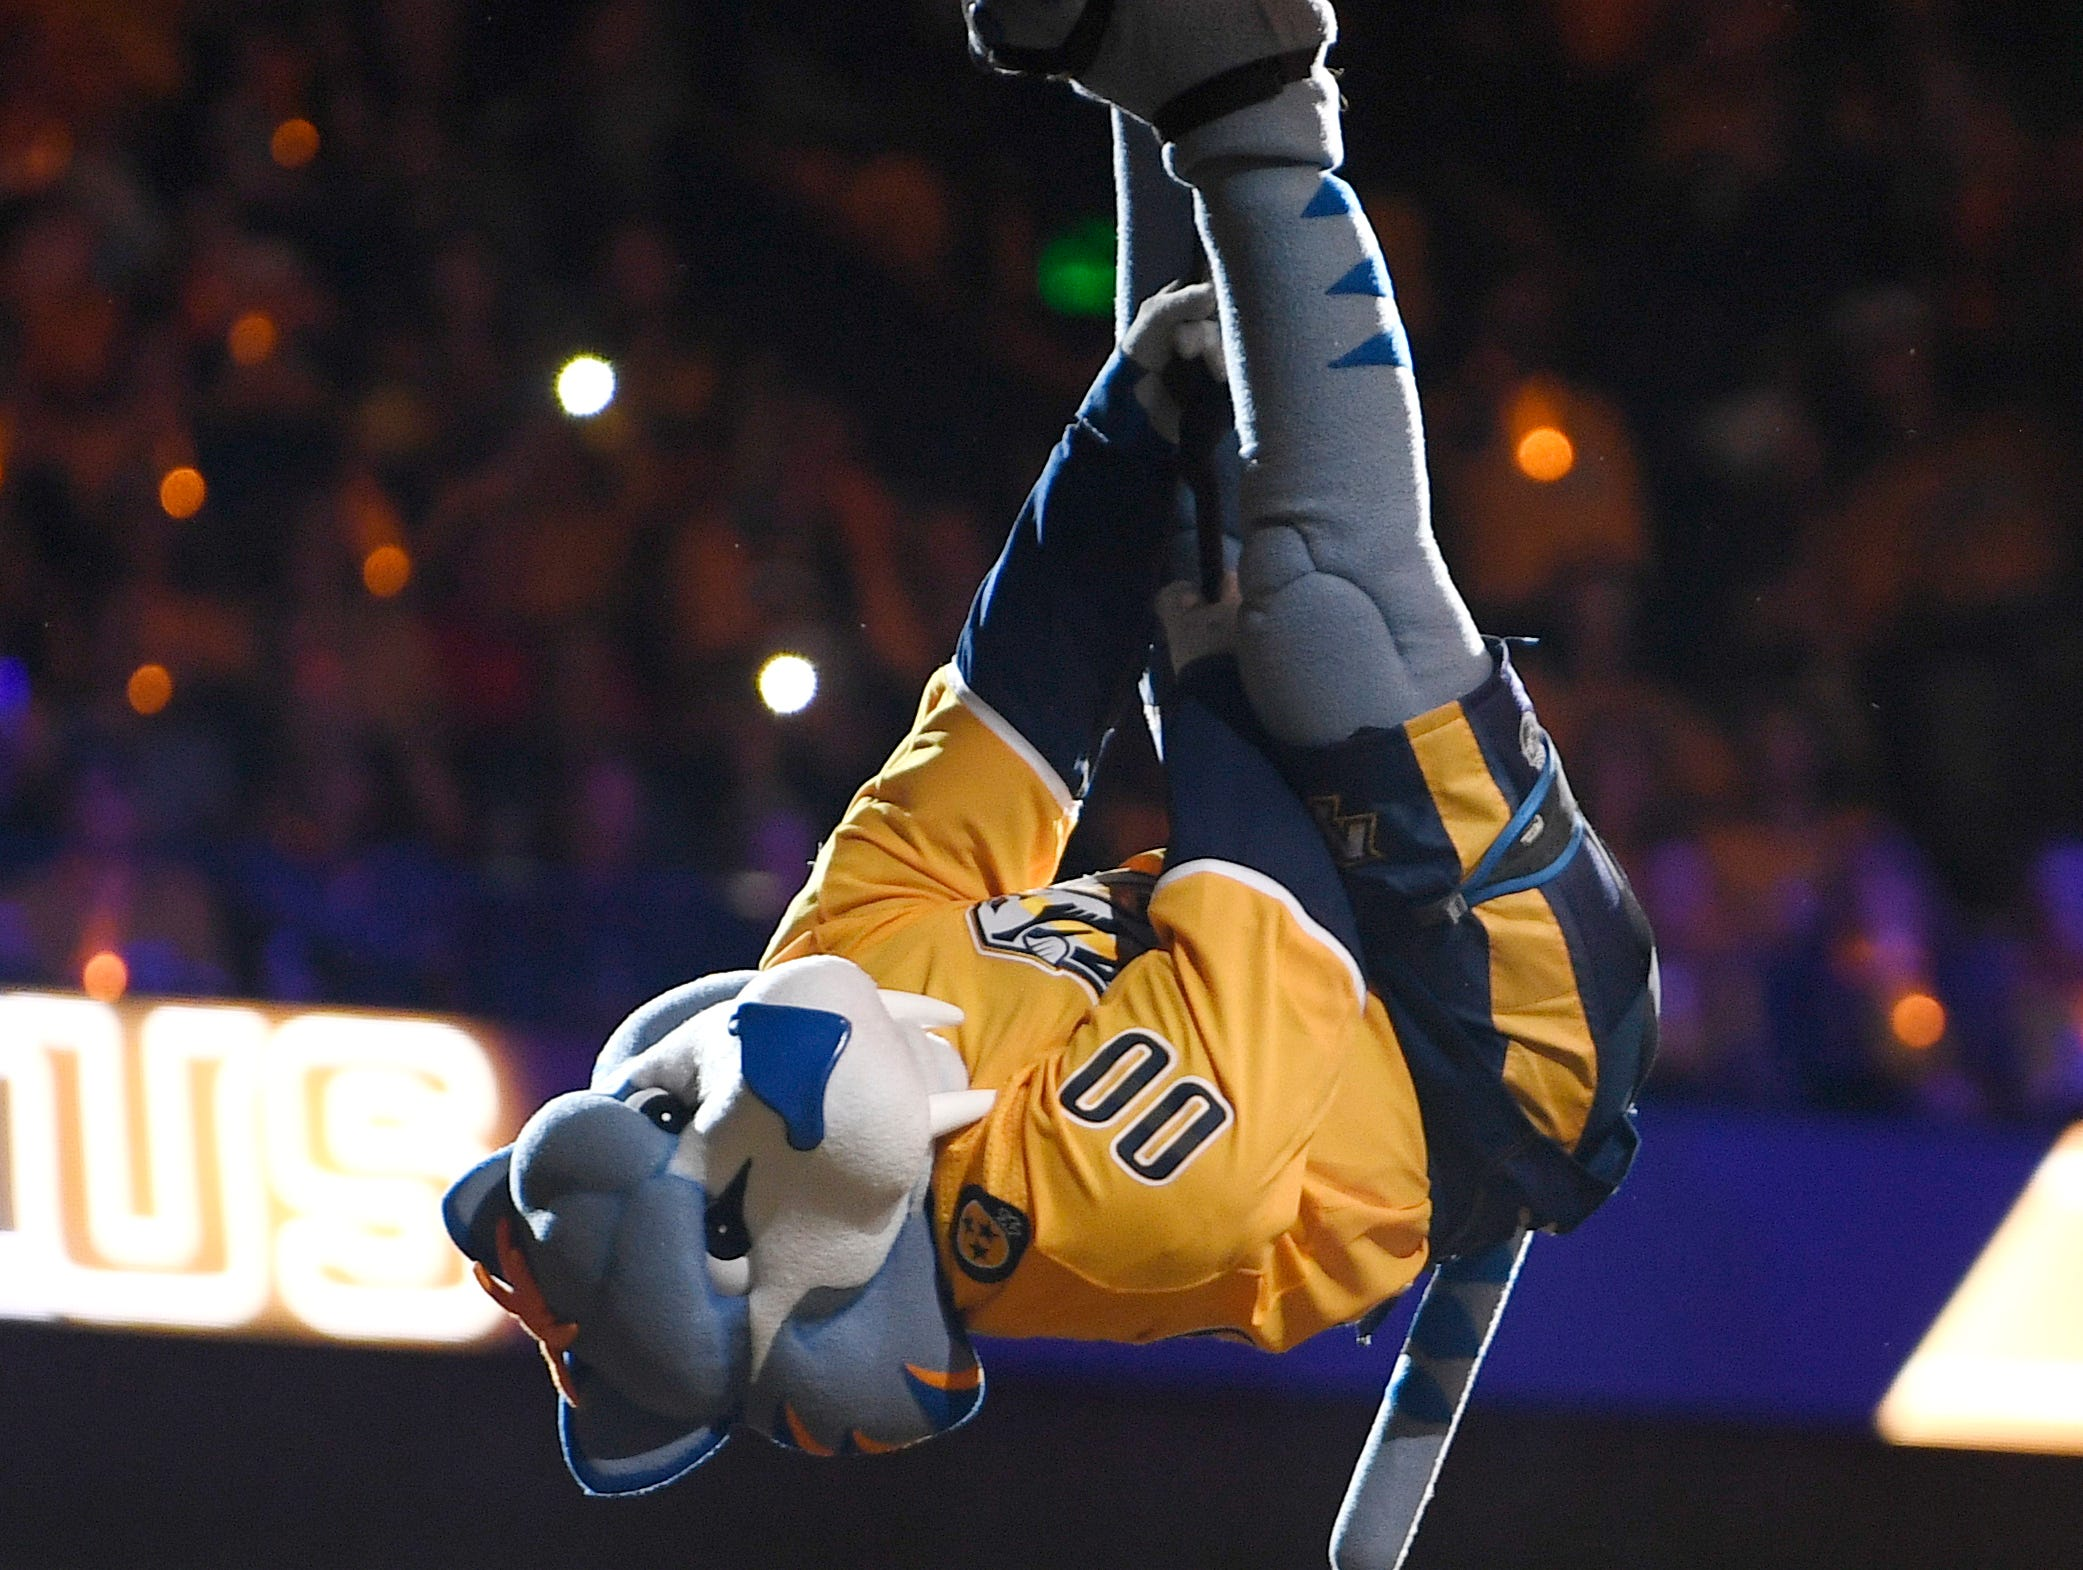 Predators mascot Gnash enters before the divisional semifinal game at Bridgestone Arena in Nashville, Tenn., Wednesday, April 10, 2019.